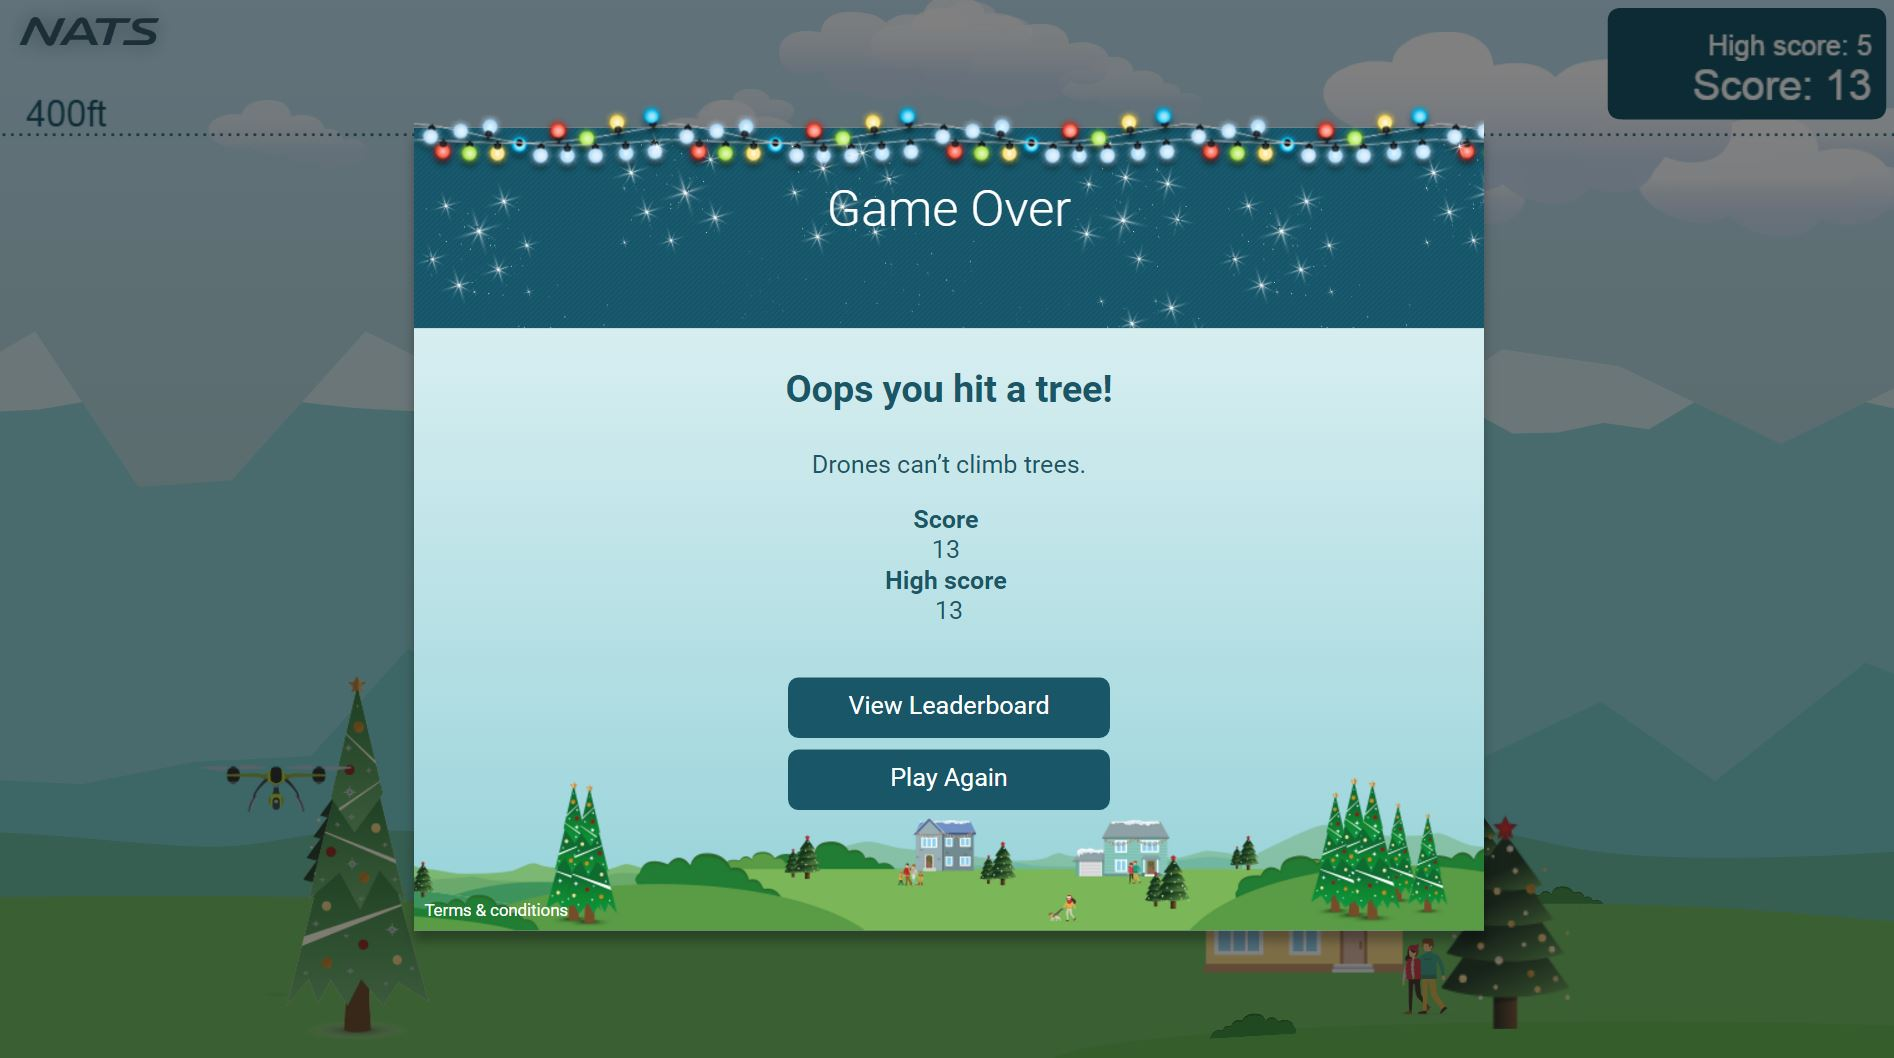 maplin drone with Christmas Drone Game Set Take Off Festive Season on Christmas Drone Sales Boom Sparks Privacy Concerns besides Christmas Drone Game Set Take Off Festive Season likewise Theinter video pany together with Atom 1 0 Micro Drone further Best New Drones  ing In 2015 2016 3625296.